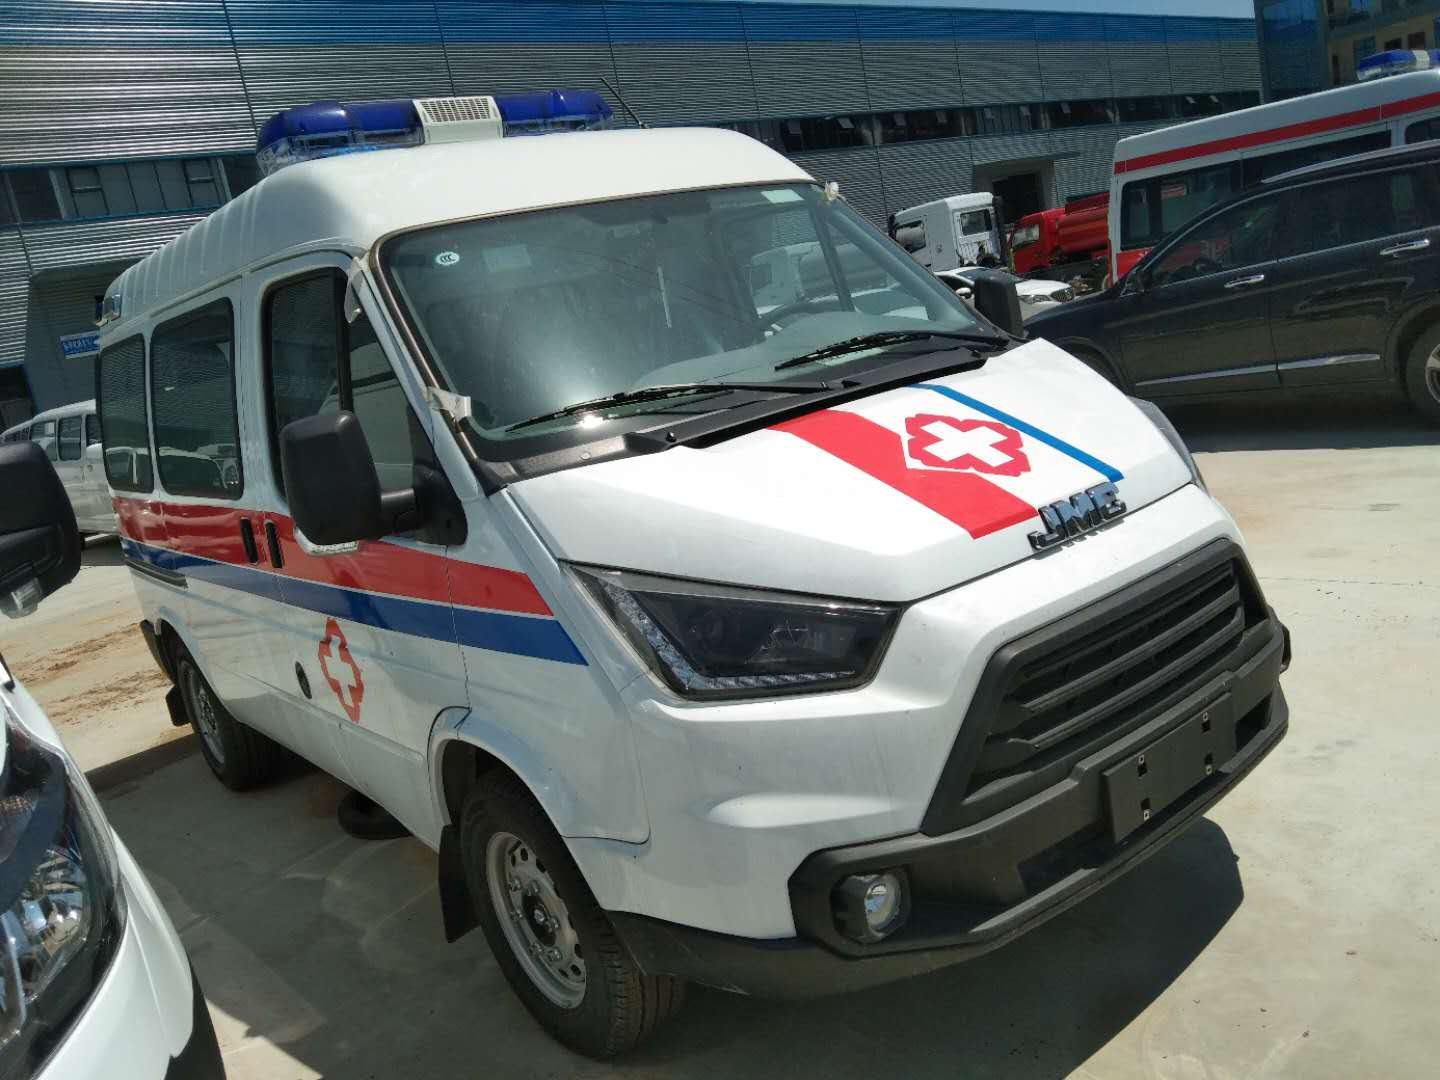 New ambulance vehicles for fighting covid-19